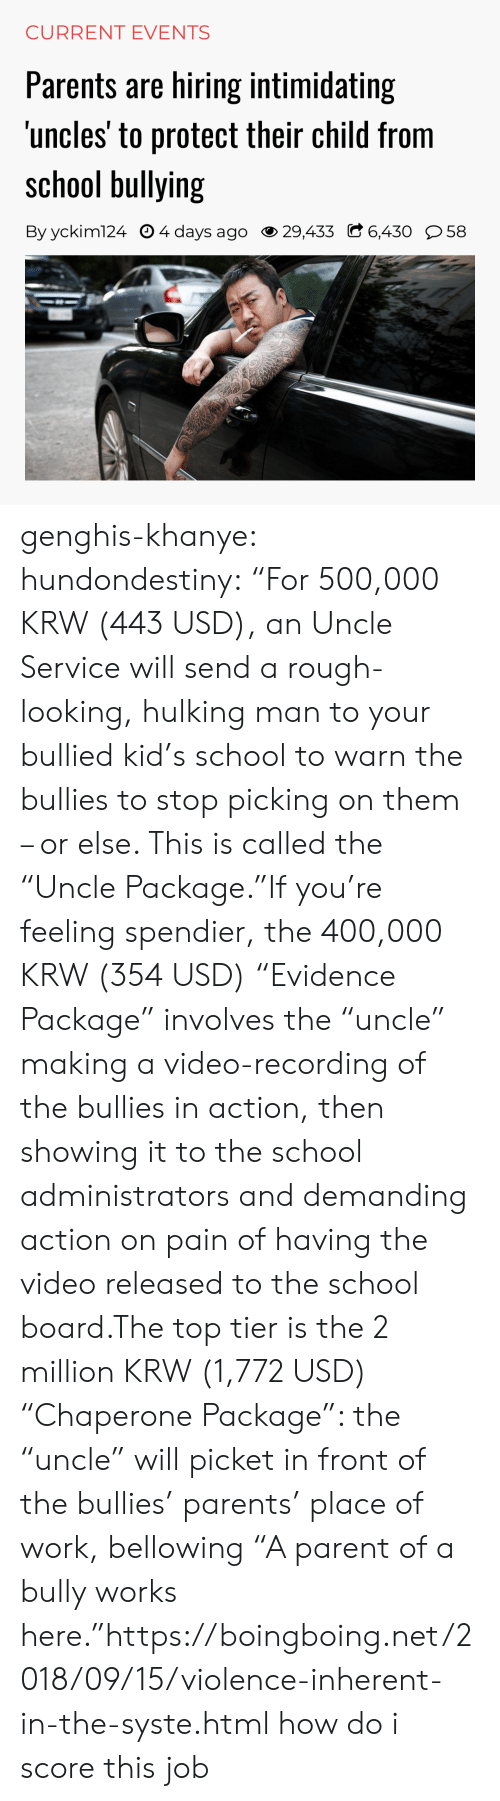 """hulking: CURRENT EVENTS  Parents are hiring intimidating  uncles' to protect their child from  school bullying  By yckim124 O 4 days ago 29,433 C 6,430 58 genghis-khanye: hundondestiny: """"For 500,000 KRW (443 USD), an Uncle Service will send a rough-looking, hulking man to your bullied kid's school to warn the bullies to stop picking on them – or else. This is called the """"Uncle Package.""""If you're feeling spendier, the 400,000 KRW (354 USD) """"Evidence Package"""" involves the """"uncle"""" making a video-recording of the bullies in action, then showing it to the school administrators and demanding action on pain of having the video released to the school board.The top tier is the 2 million KRW (1,772 USD) """"Chaperone Package"""": the """"uncle"""" will picket in front of the bullies' parents' place of work, bellowing """"A parent of a bully works here.""""https://boingboing.net/2018/09/15/violence-inherent-in-the-syste.html  how do i score this job"""